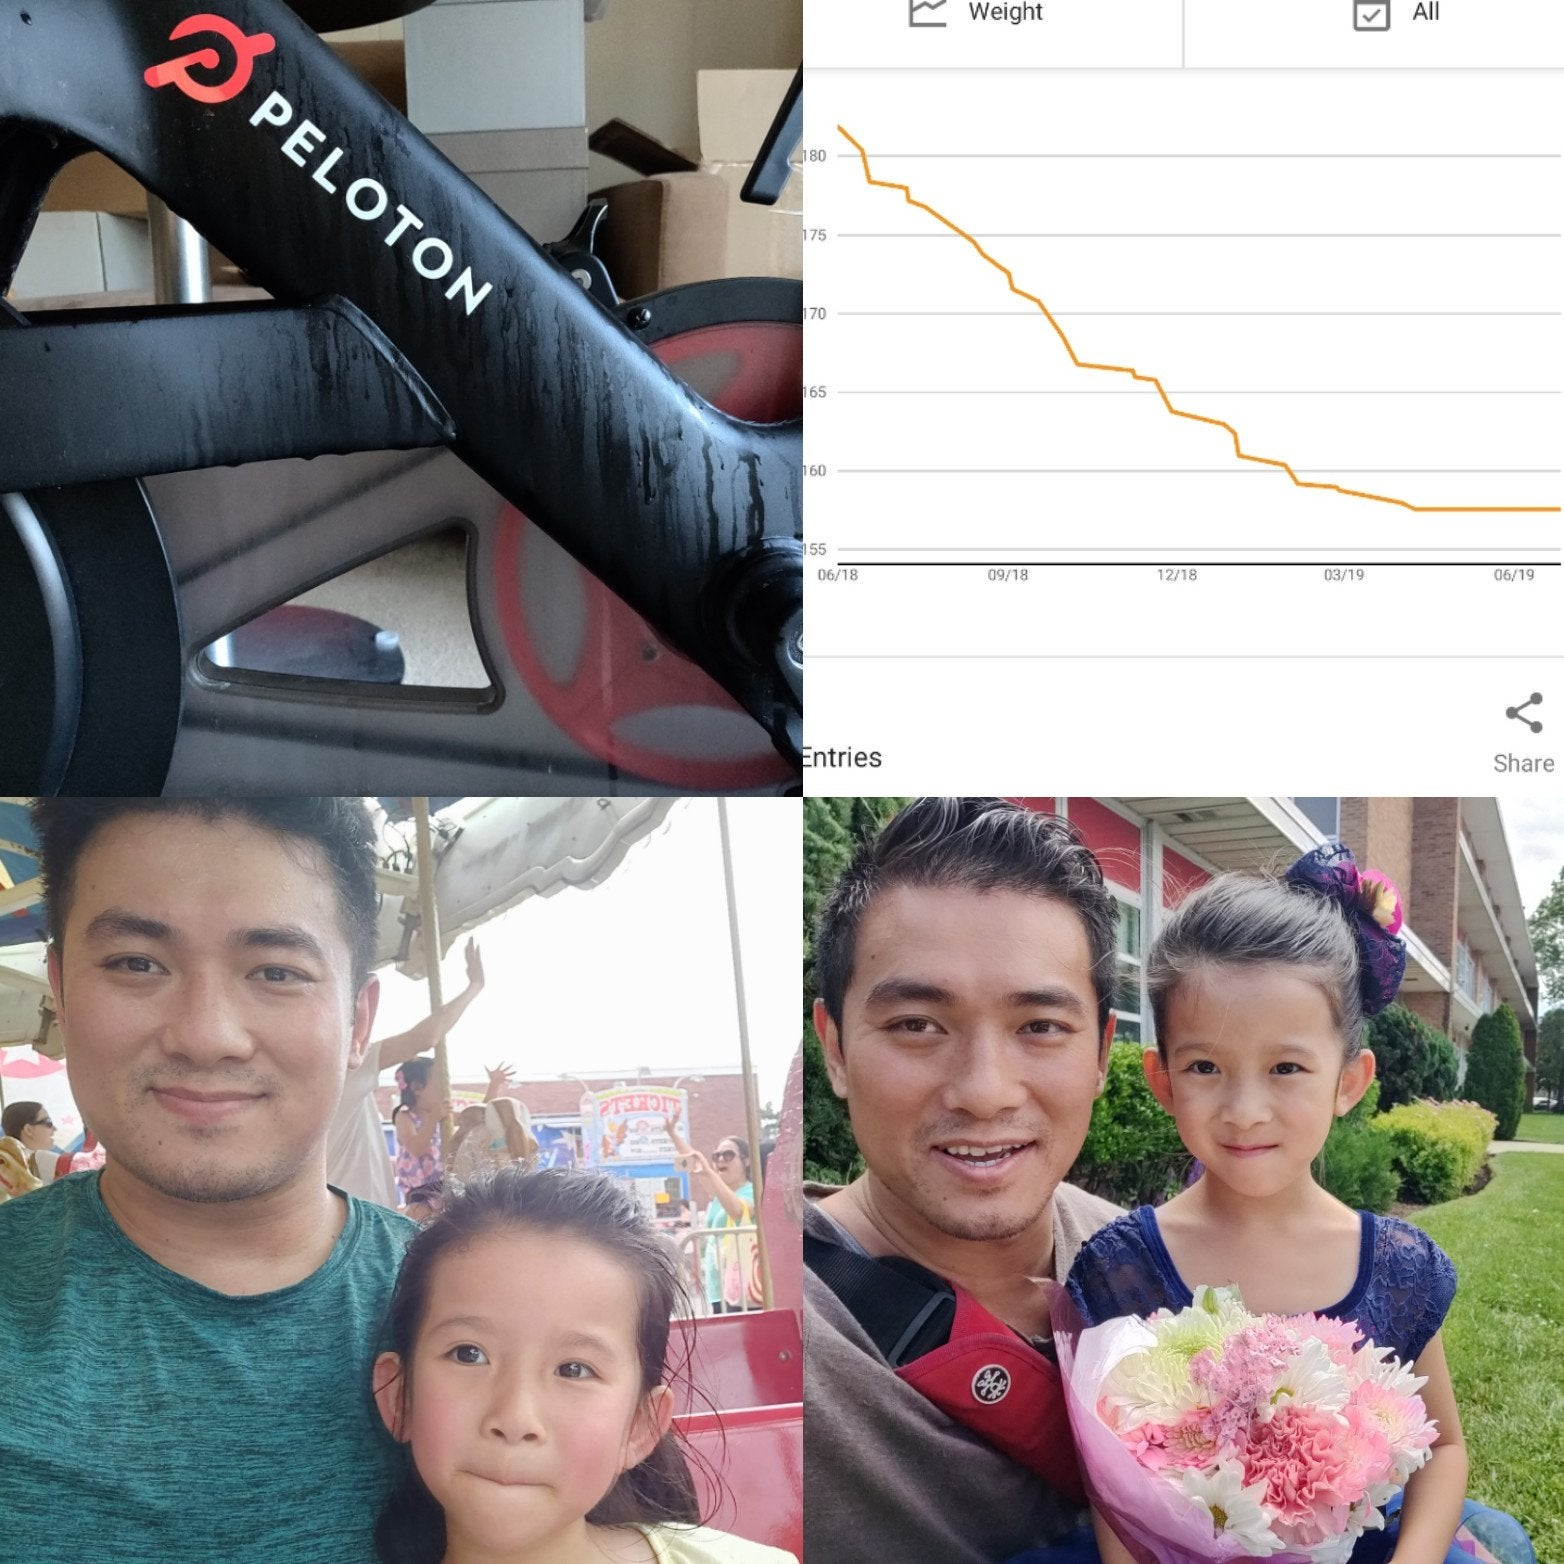 Scroller52 peloton before and after